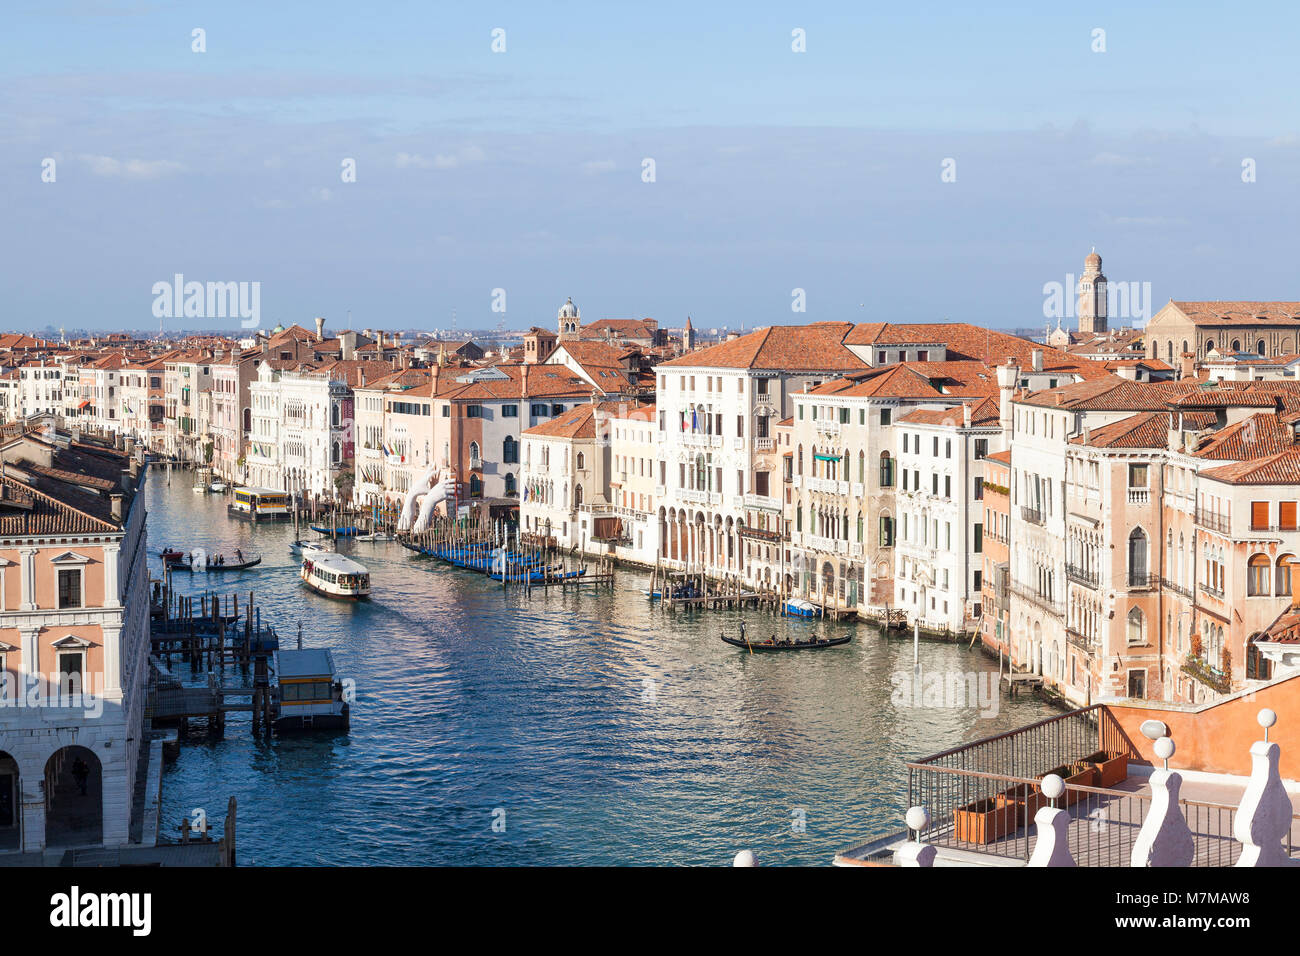 Aerial rooftop view of the Grand Canal and Venice, Italy from the terrace of Fondaco Tedeschi looking down on Cannaregio - Stock Image